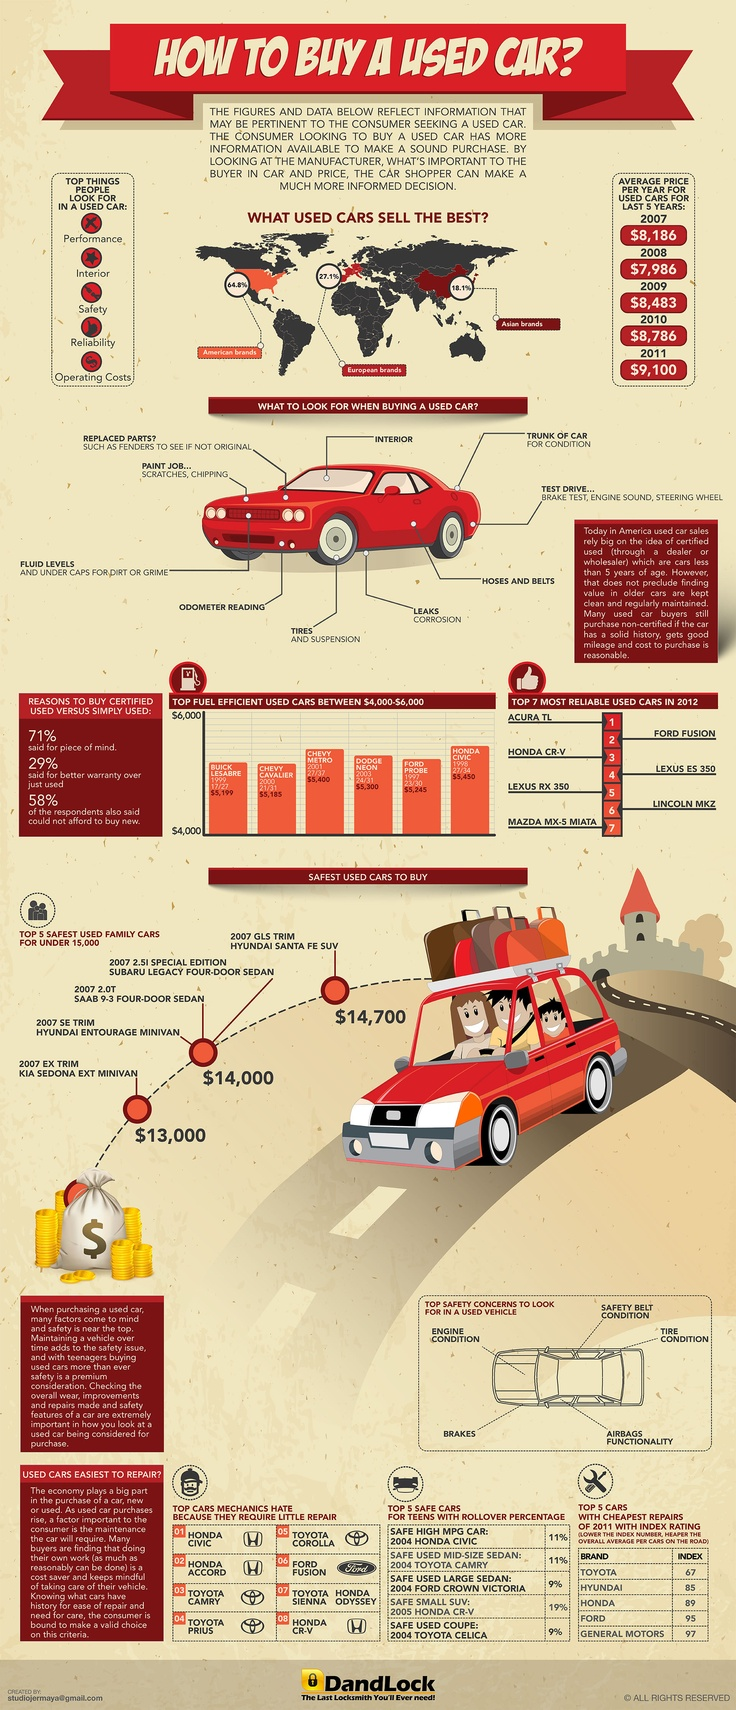 112 best Buying Used Cars images on Pinterest   Infographic, Auto ...